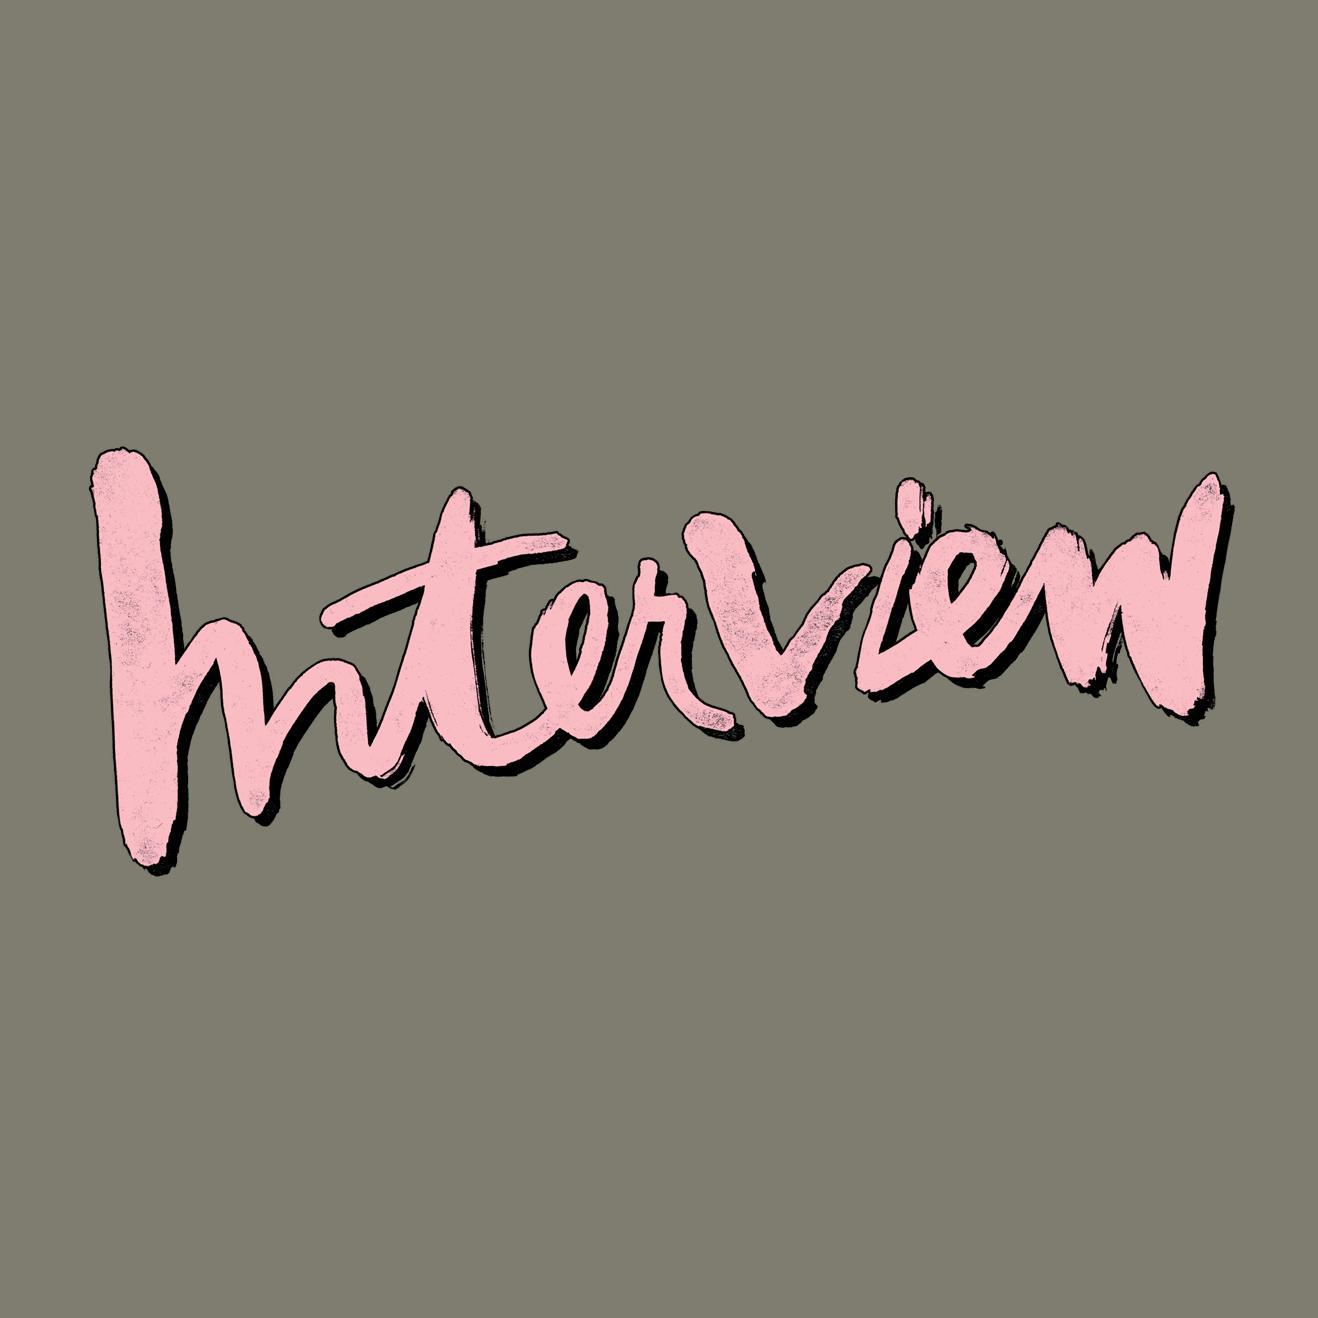 Avatar - Interview